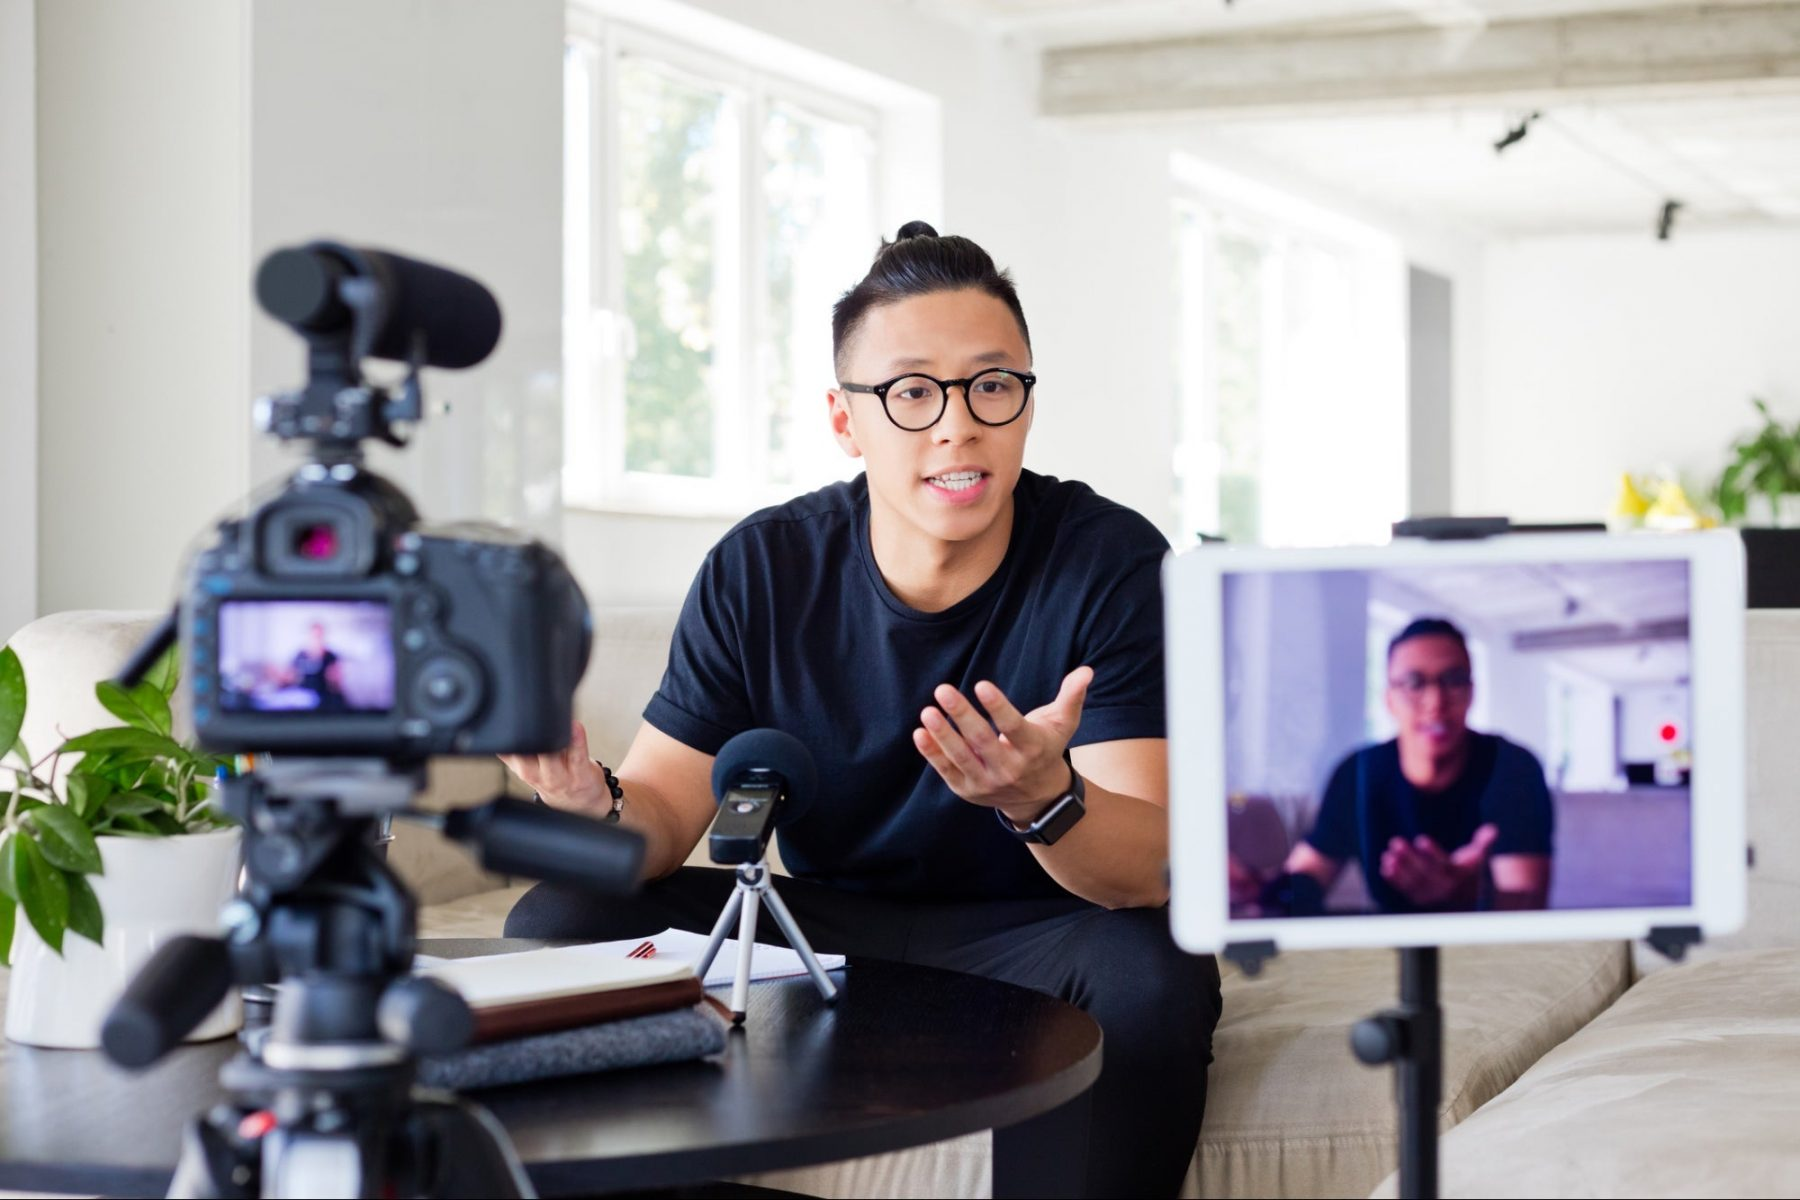 6-skills-you-need-to-become-a-successful-online-content-creator